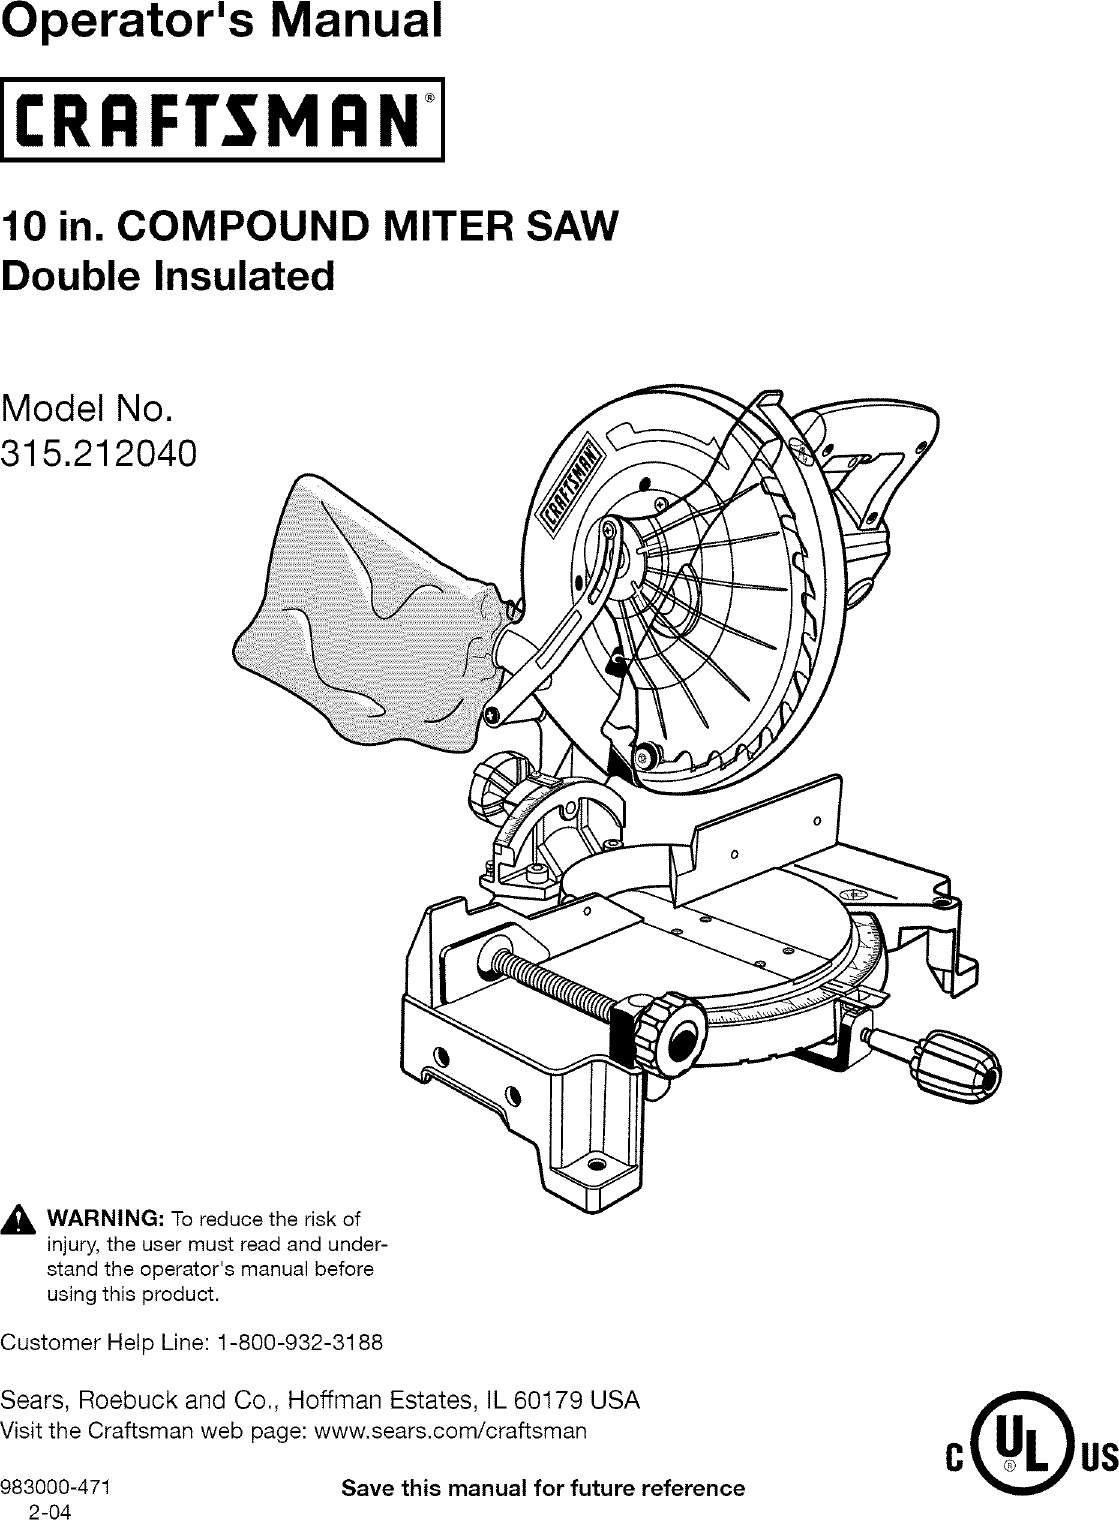 Craftsman 315212040 User Manual 10 COMPOUND MITER SAW